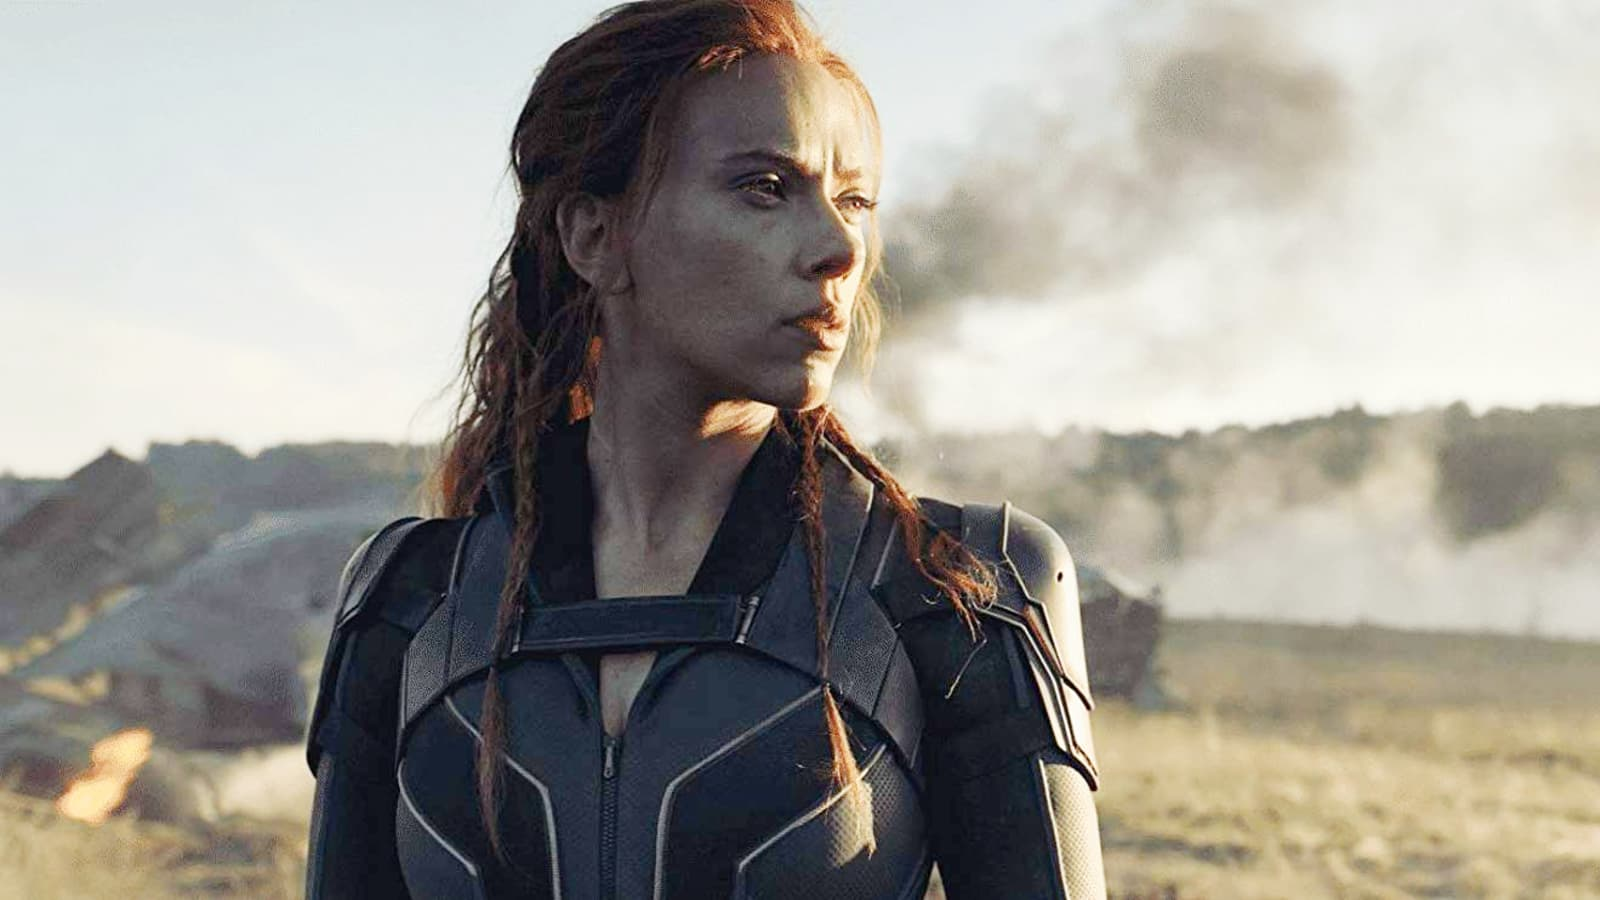 Disney pushes 'Black Widow' from May 1 release and it could impact the whole Marvel slate